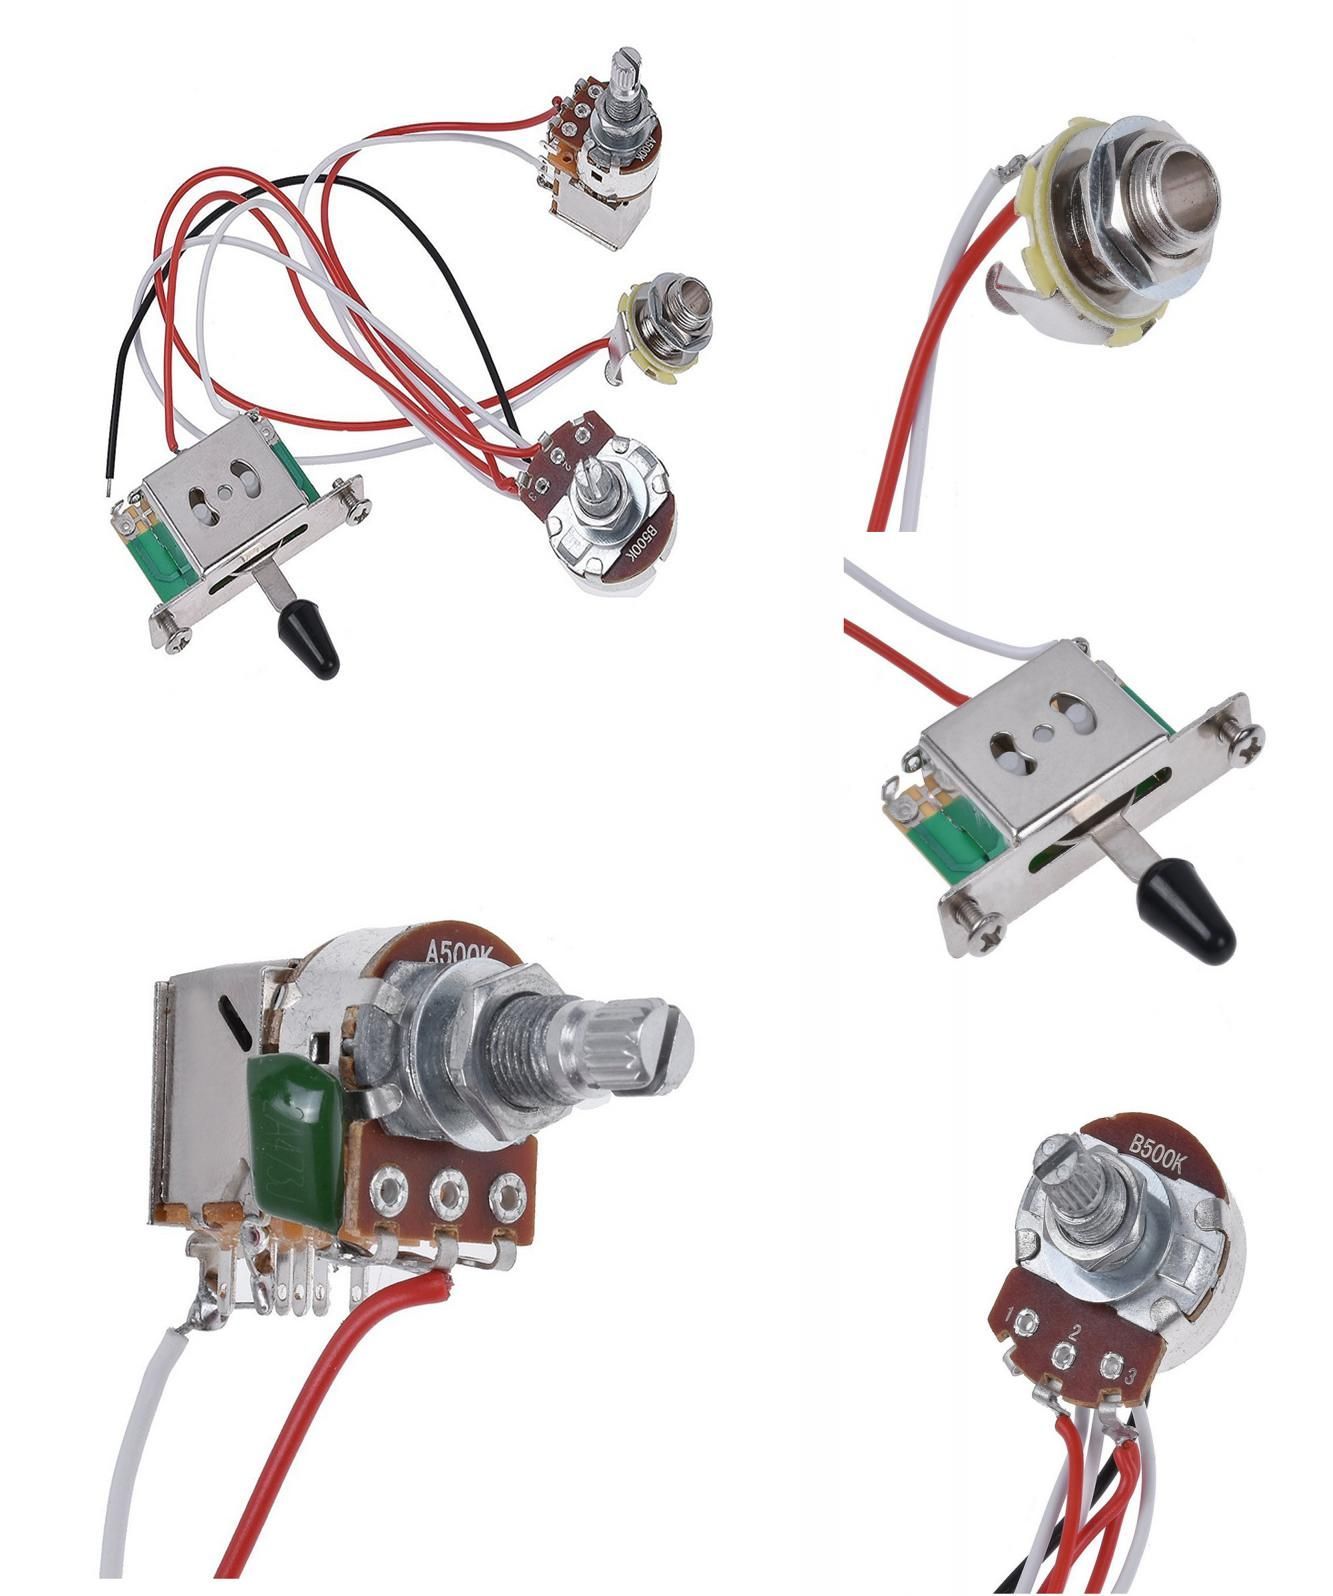 hight resolution of  visit to buy electric guitar wiring harness prewired kit 3 way toggle switch 1